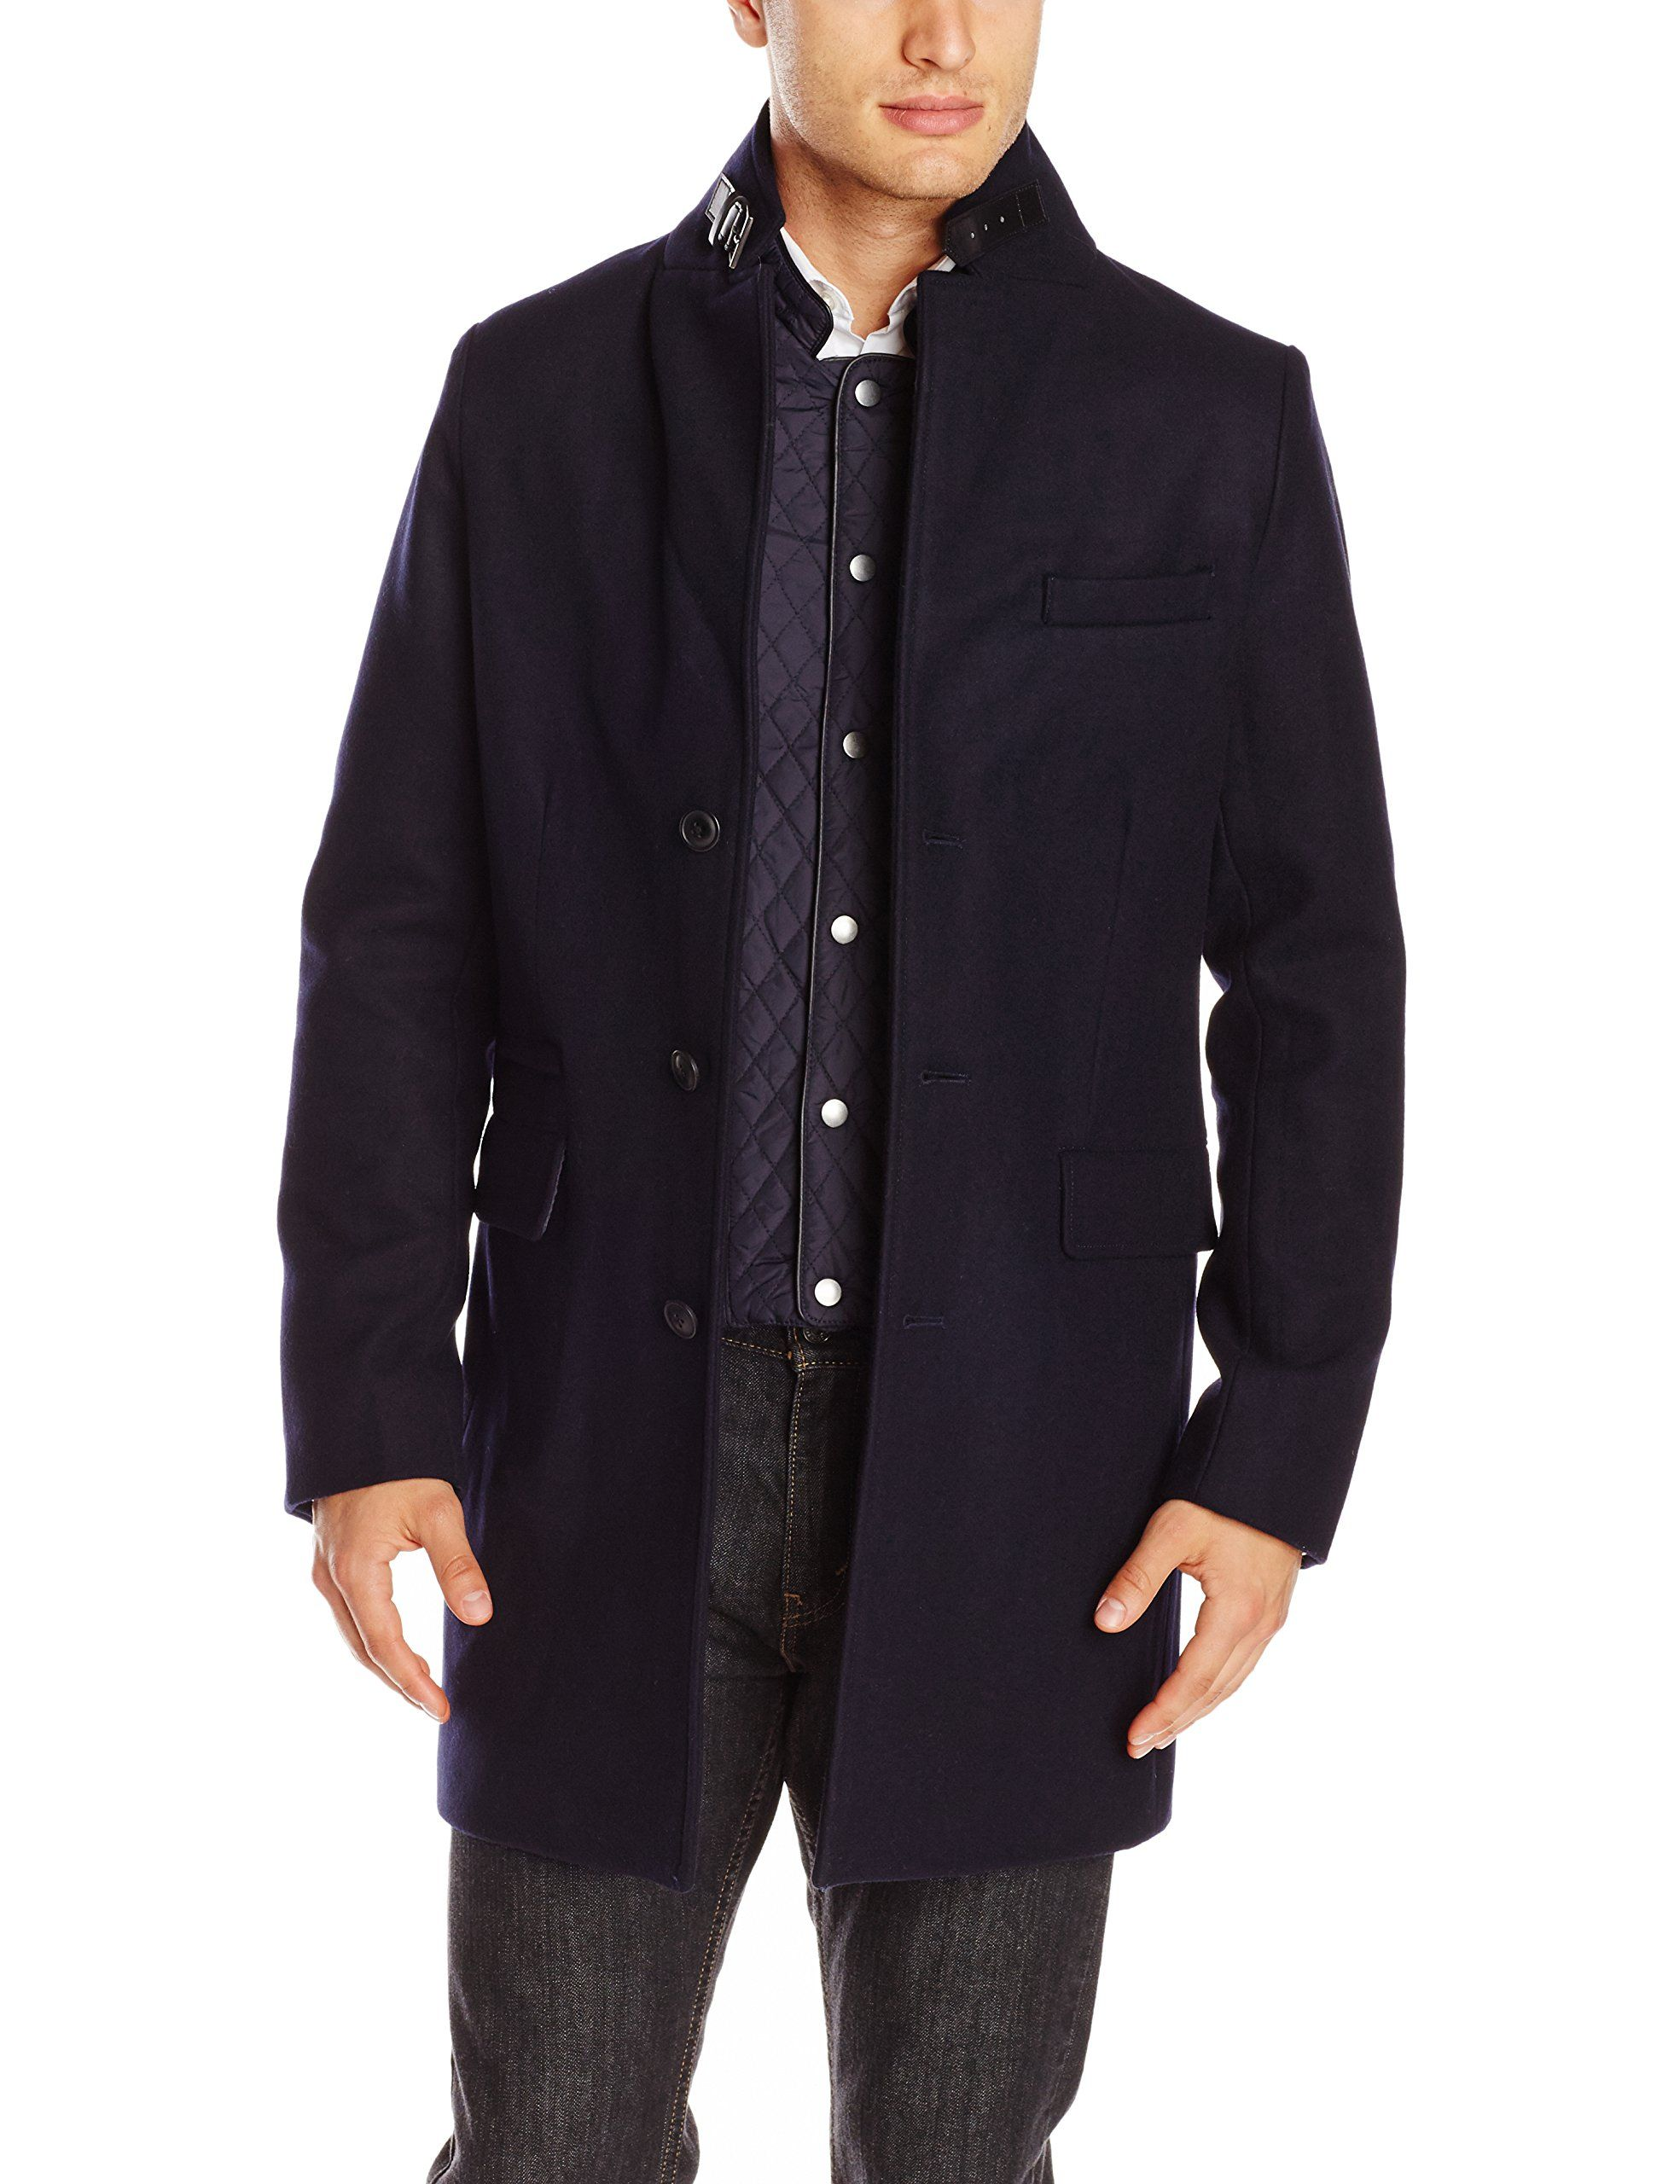 Elie Tahari Men's Modern Wool 37 Inch Topcoat with Quilted Nylon Bib, Midnight, Small